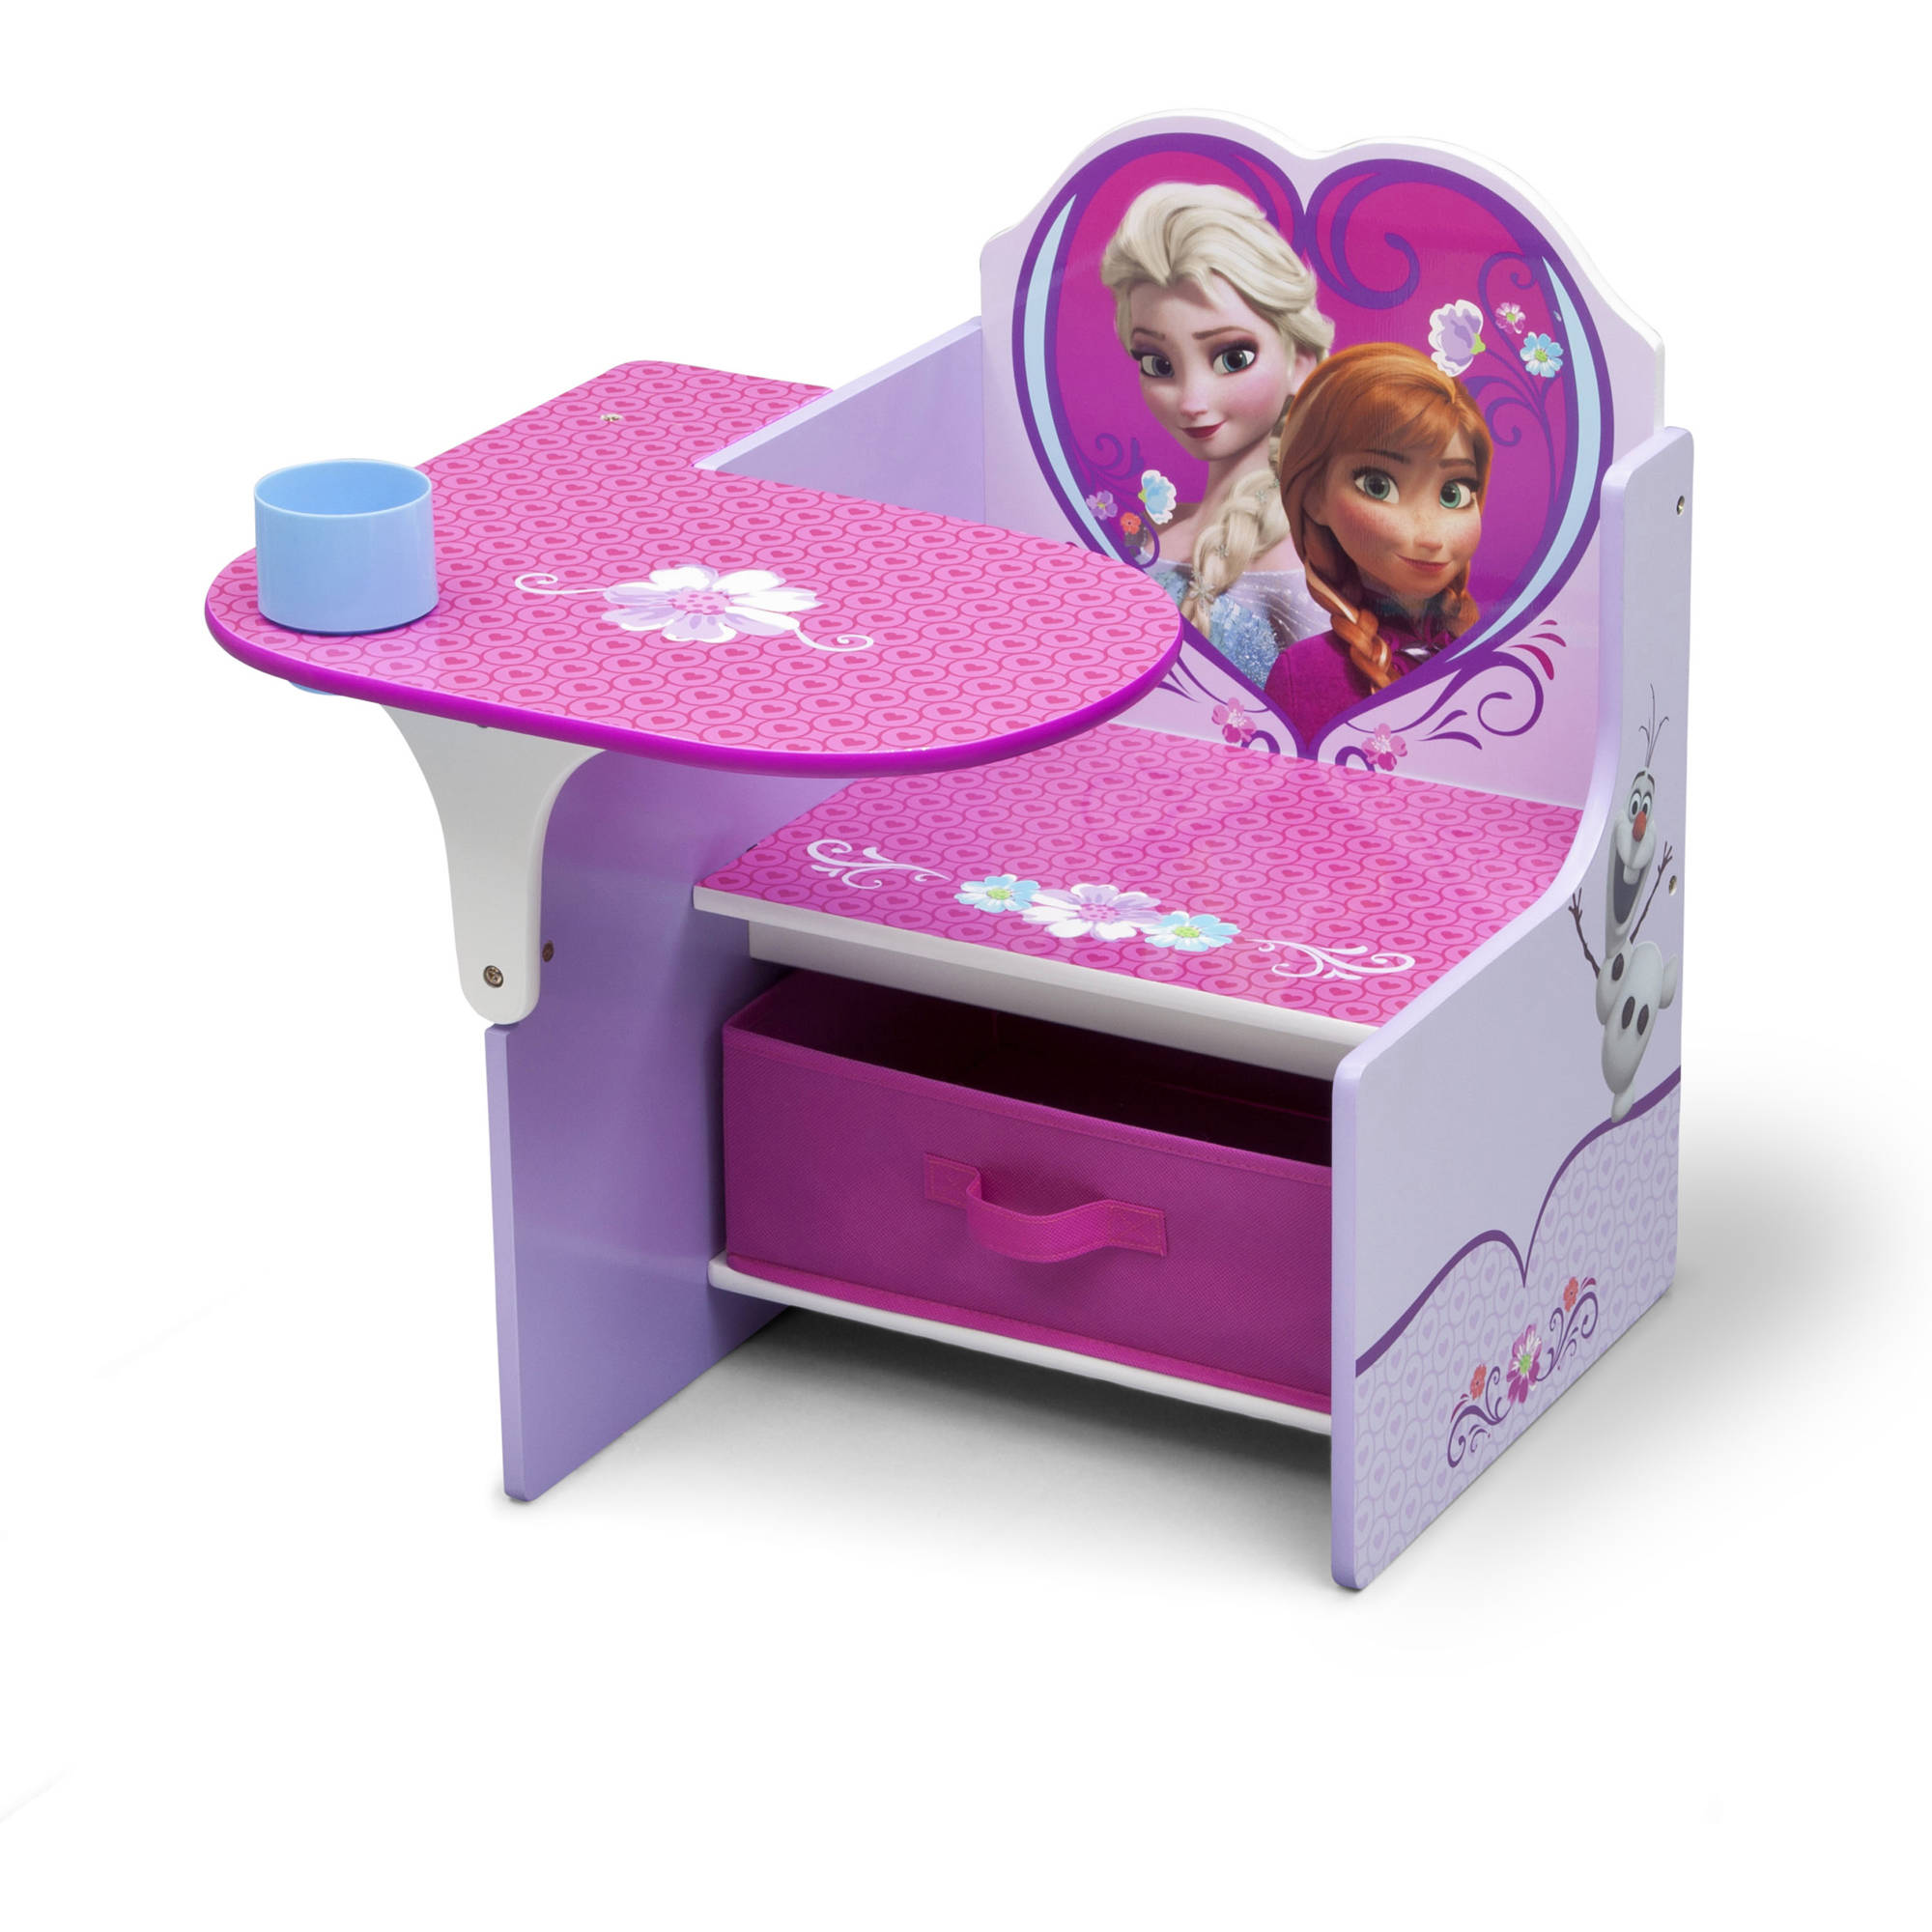 Disney Frozen Toddler Child Chair Desk With Bonus Storage Bin By Delta Children Com